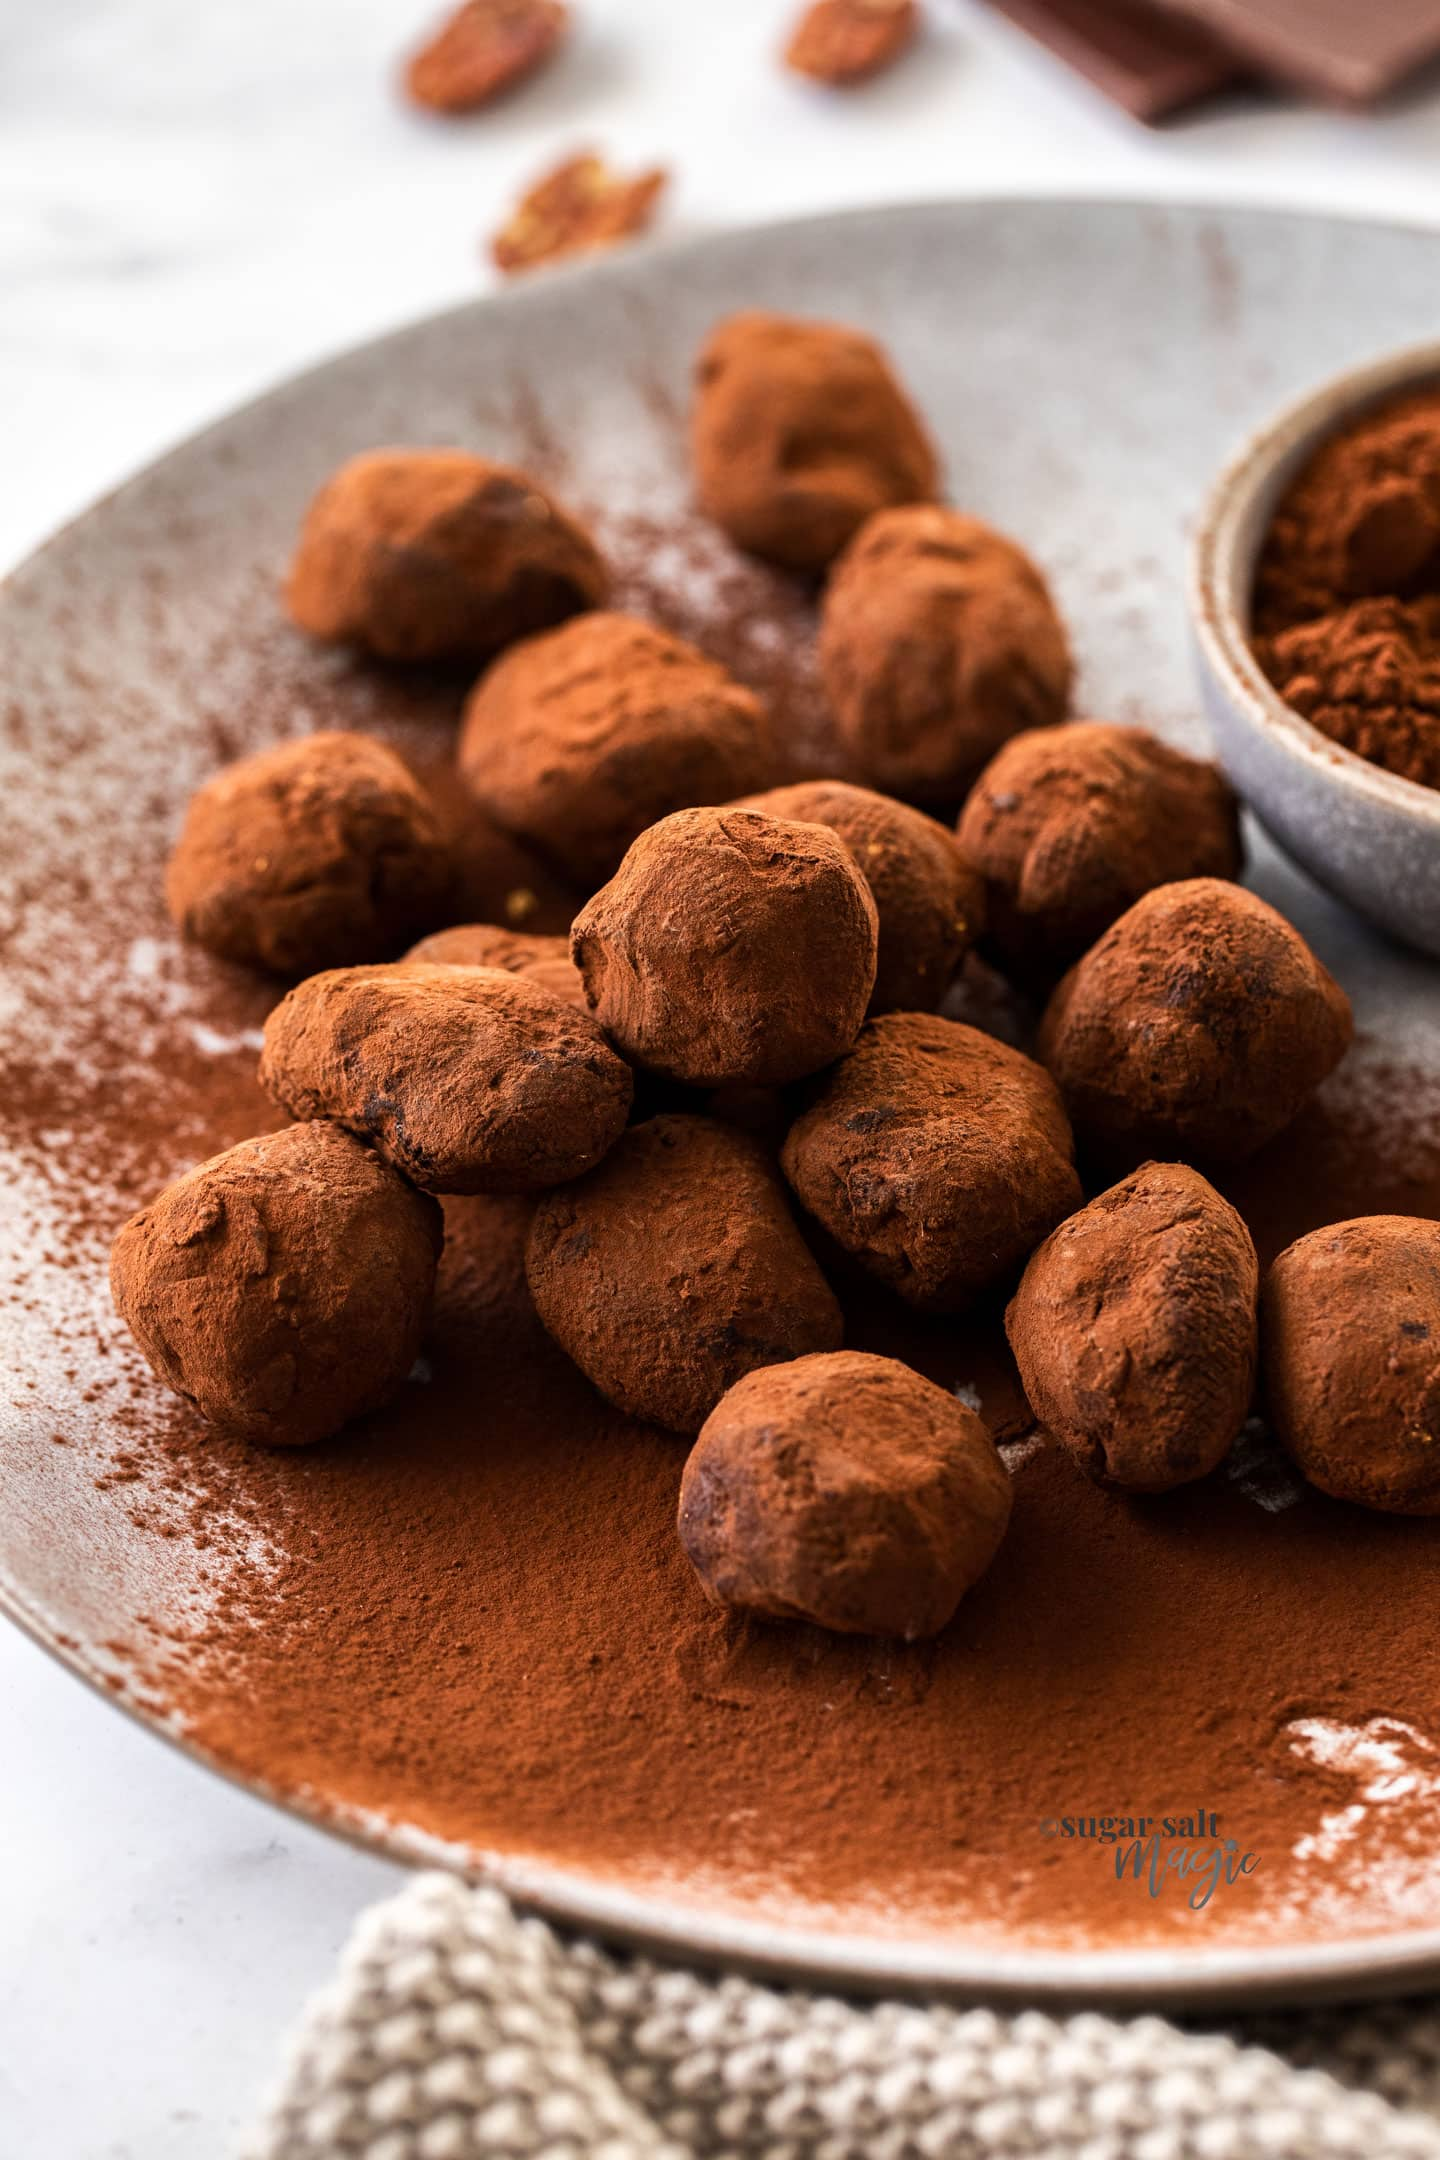 A pile of chocolate truffles on a grey plate